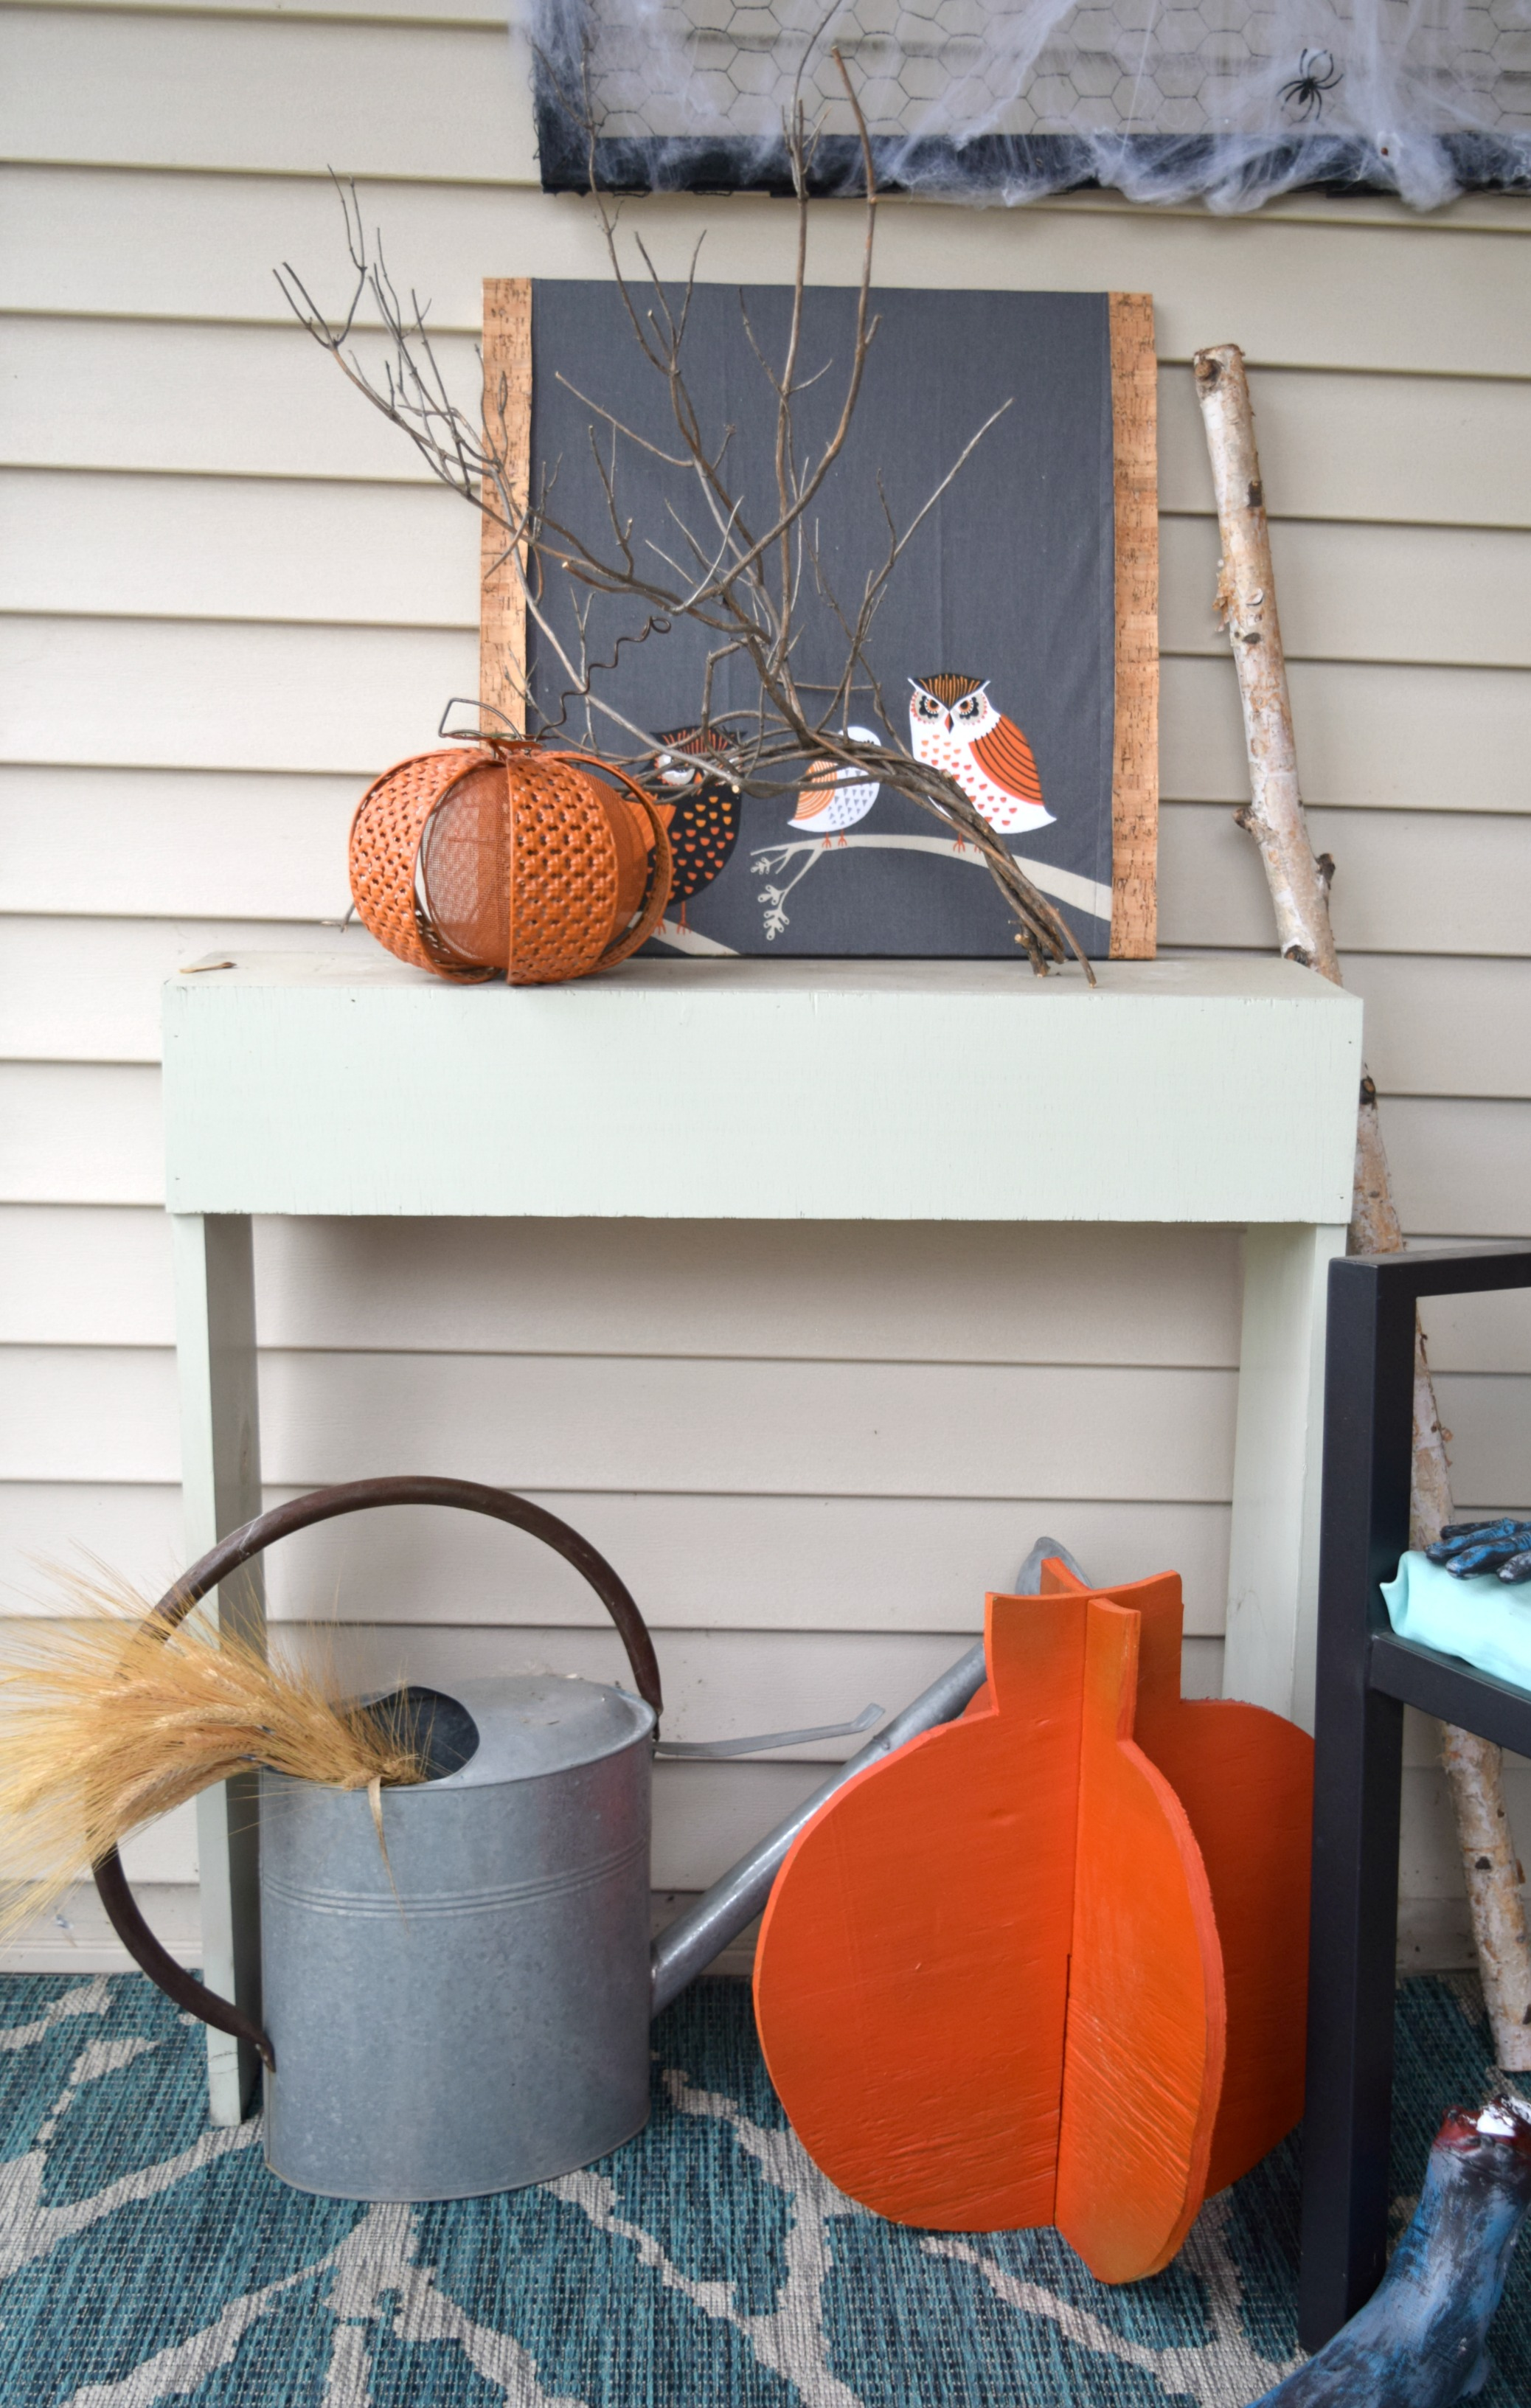 Spooky Home Decor Halloween Decorations On Front Porch Our House Now A Home